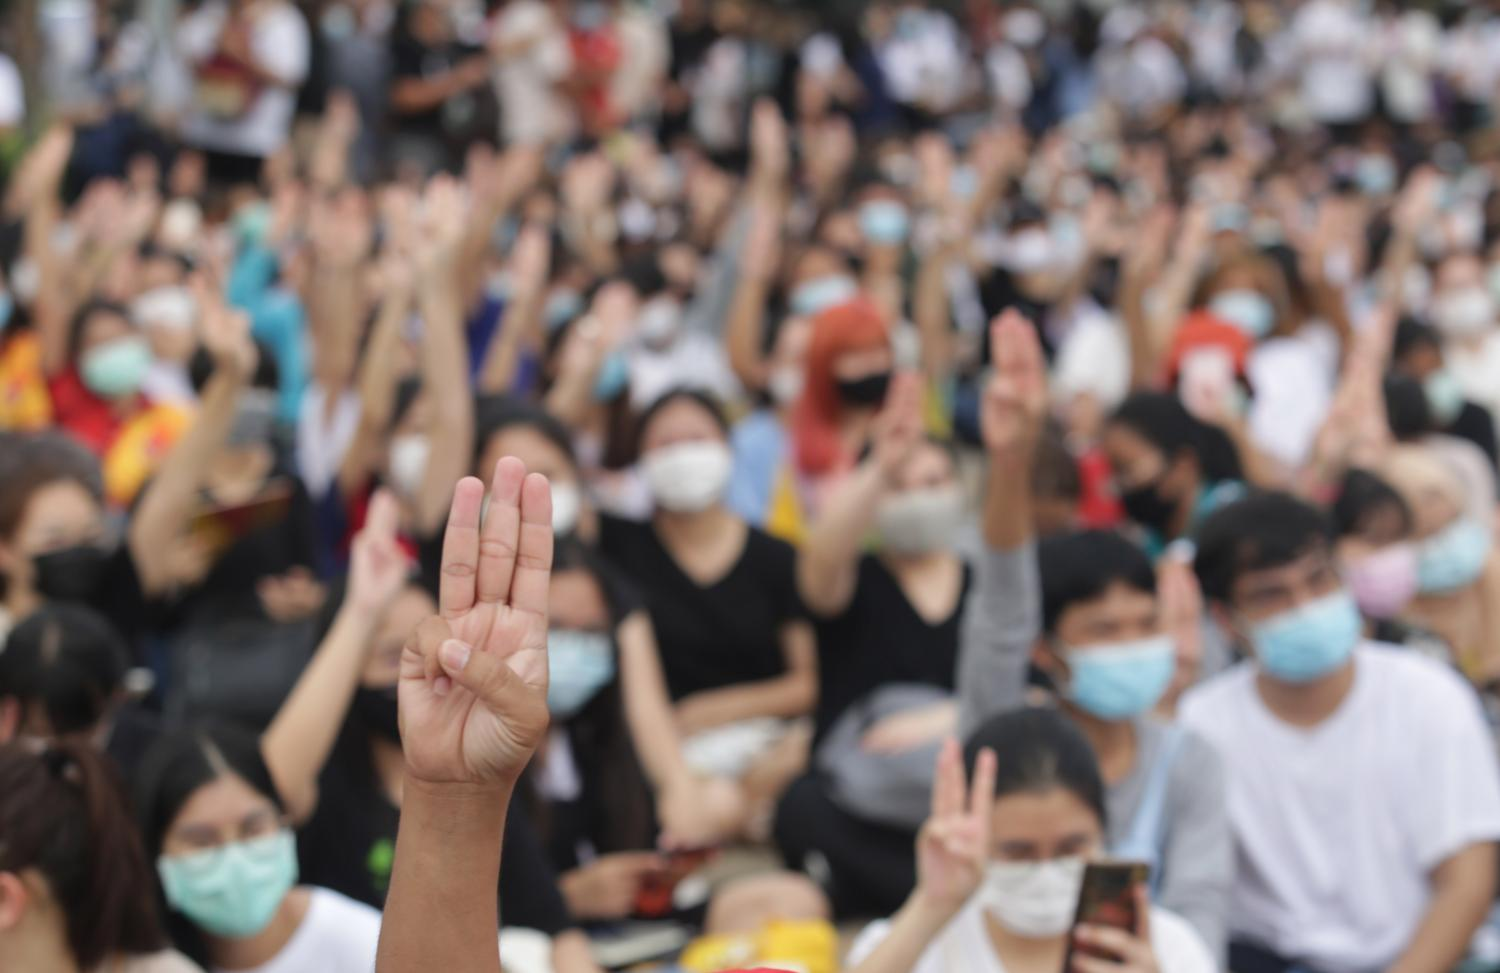 In this Aug 10 file photo, pro-democracy protesters flash a three-finger salute against dictatorship during a rally at Thammasat Rangsit campus. The conflict has deepened after some protest leaders added reform of the monarchy to their demands.(Photo by Apichit Jinakul)